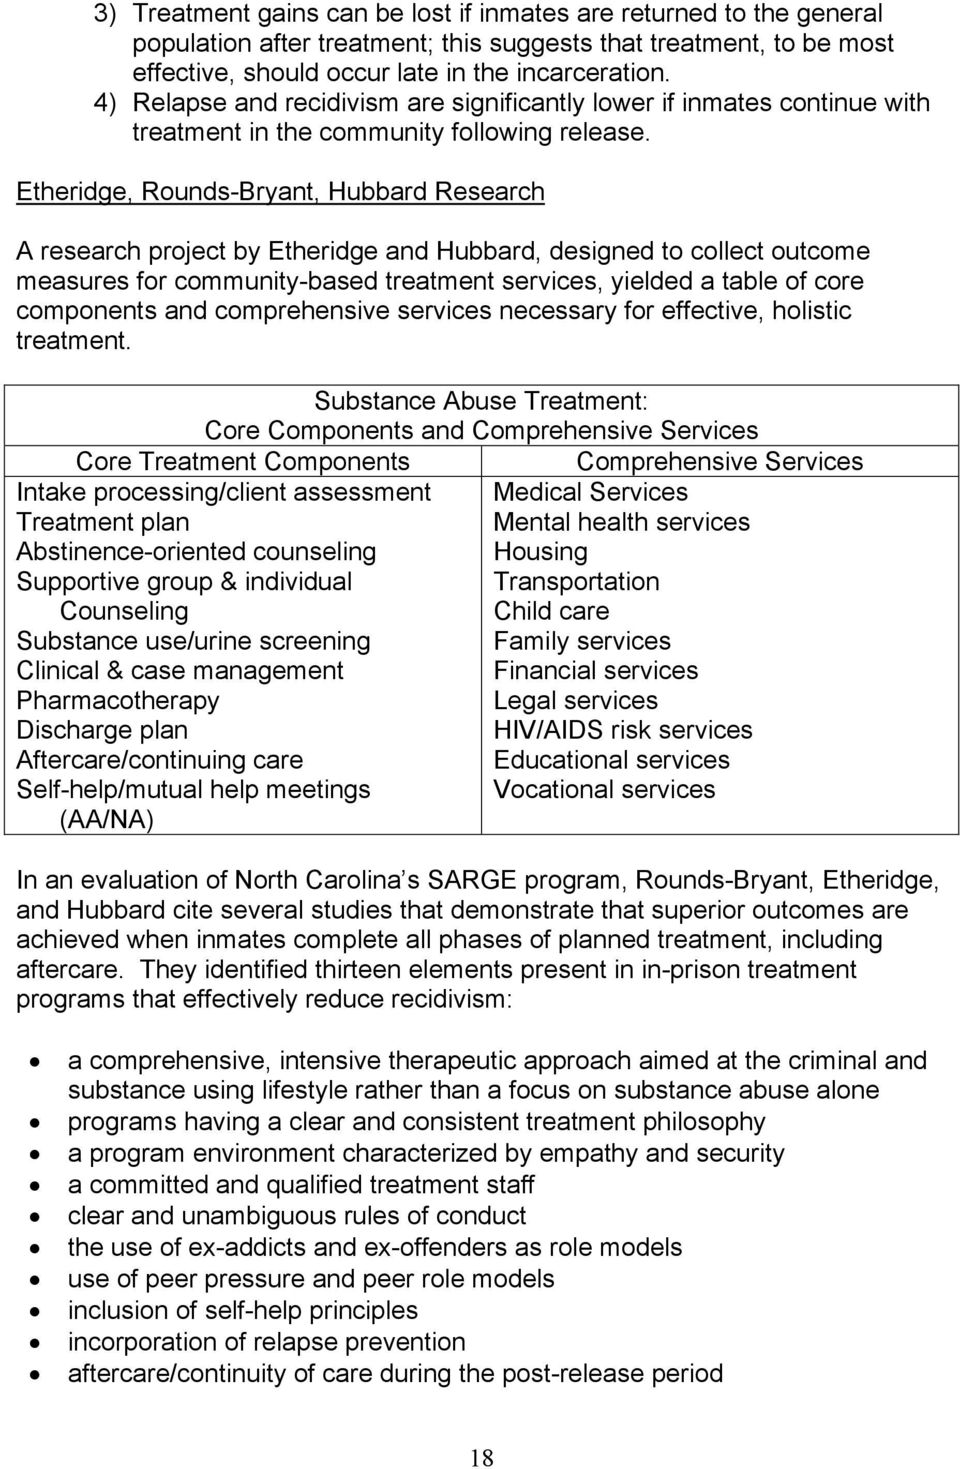 Etheridge, Rounds-Bryant, Hubbard Research A research project by Etheridge and Hubbard, designed to collect outcome measures for community-based treatment services, yielded a table of core components